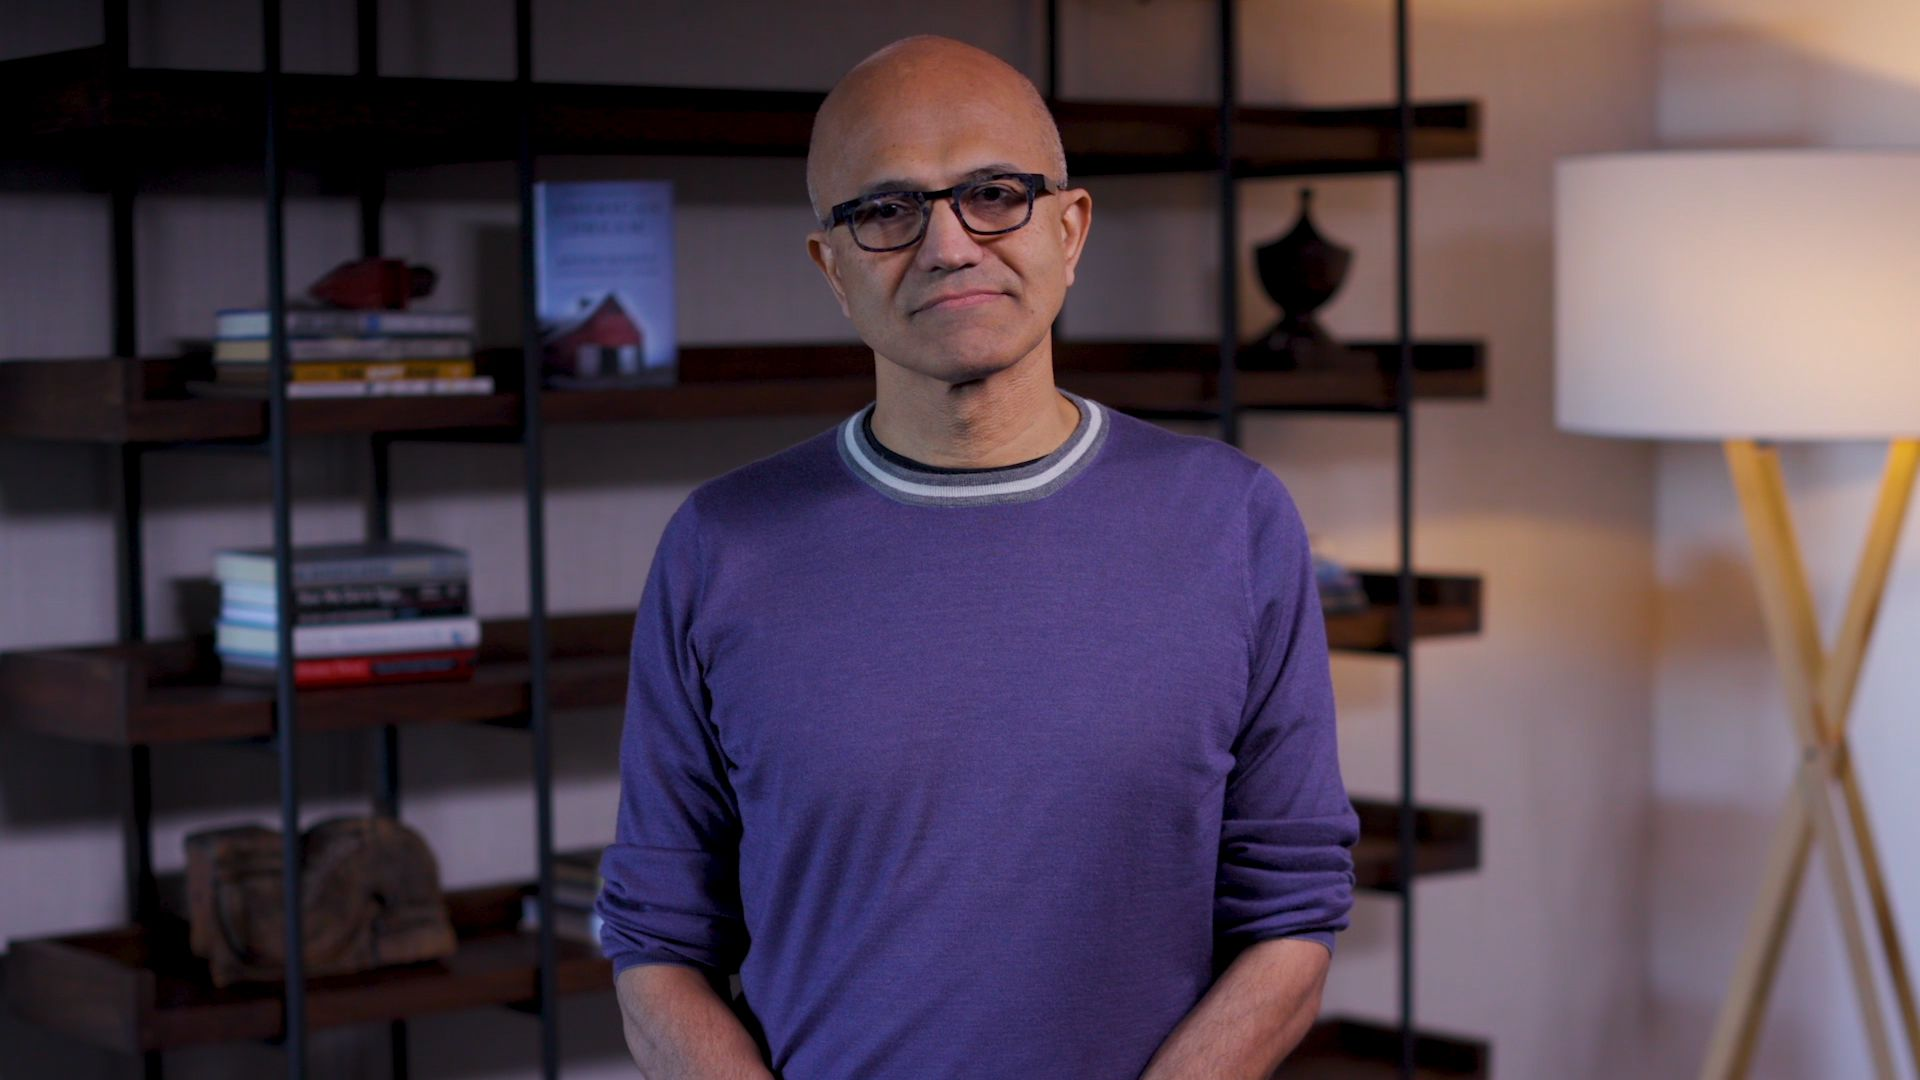 Microsoft CEO Satya Nadella, in an interview with Axios on HBO